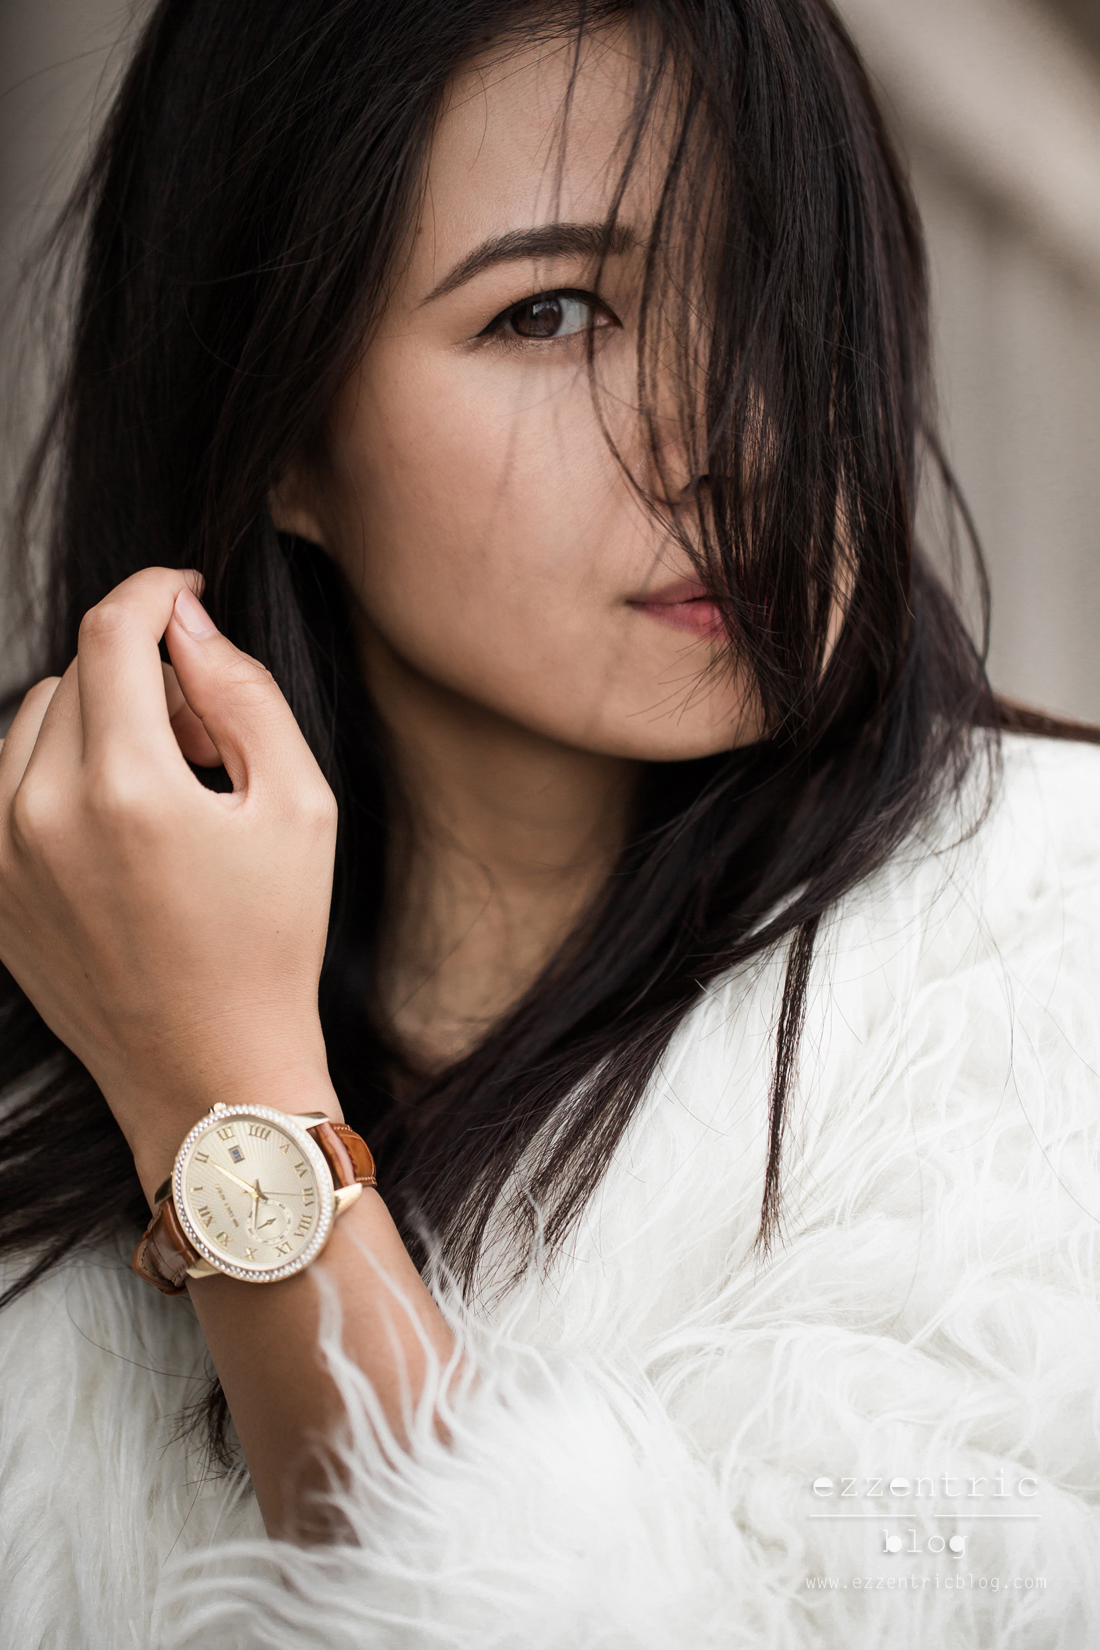 Micheal Kors Brown Watch Styling 05